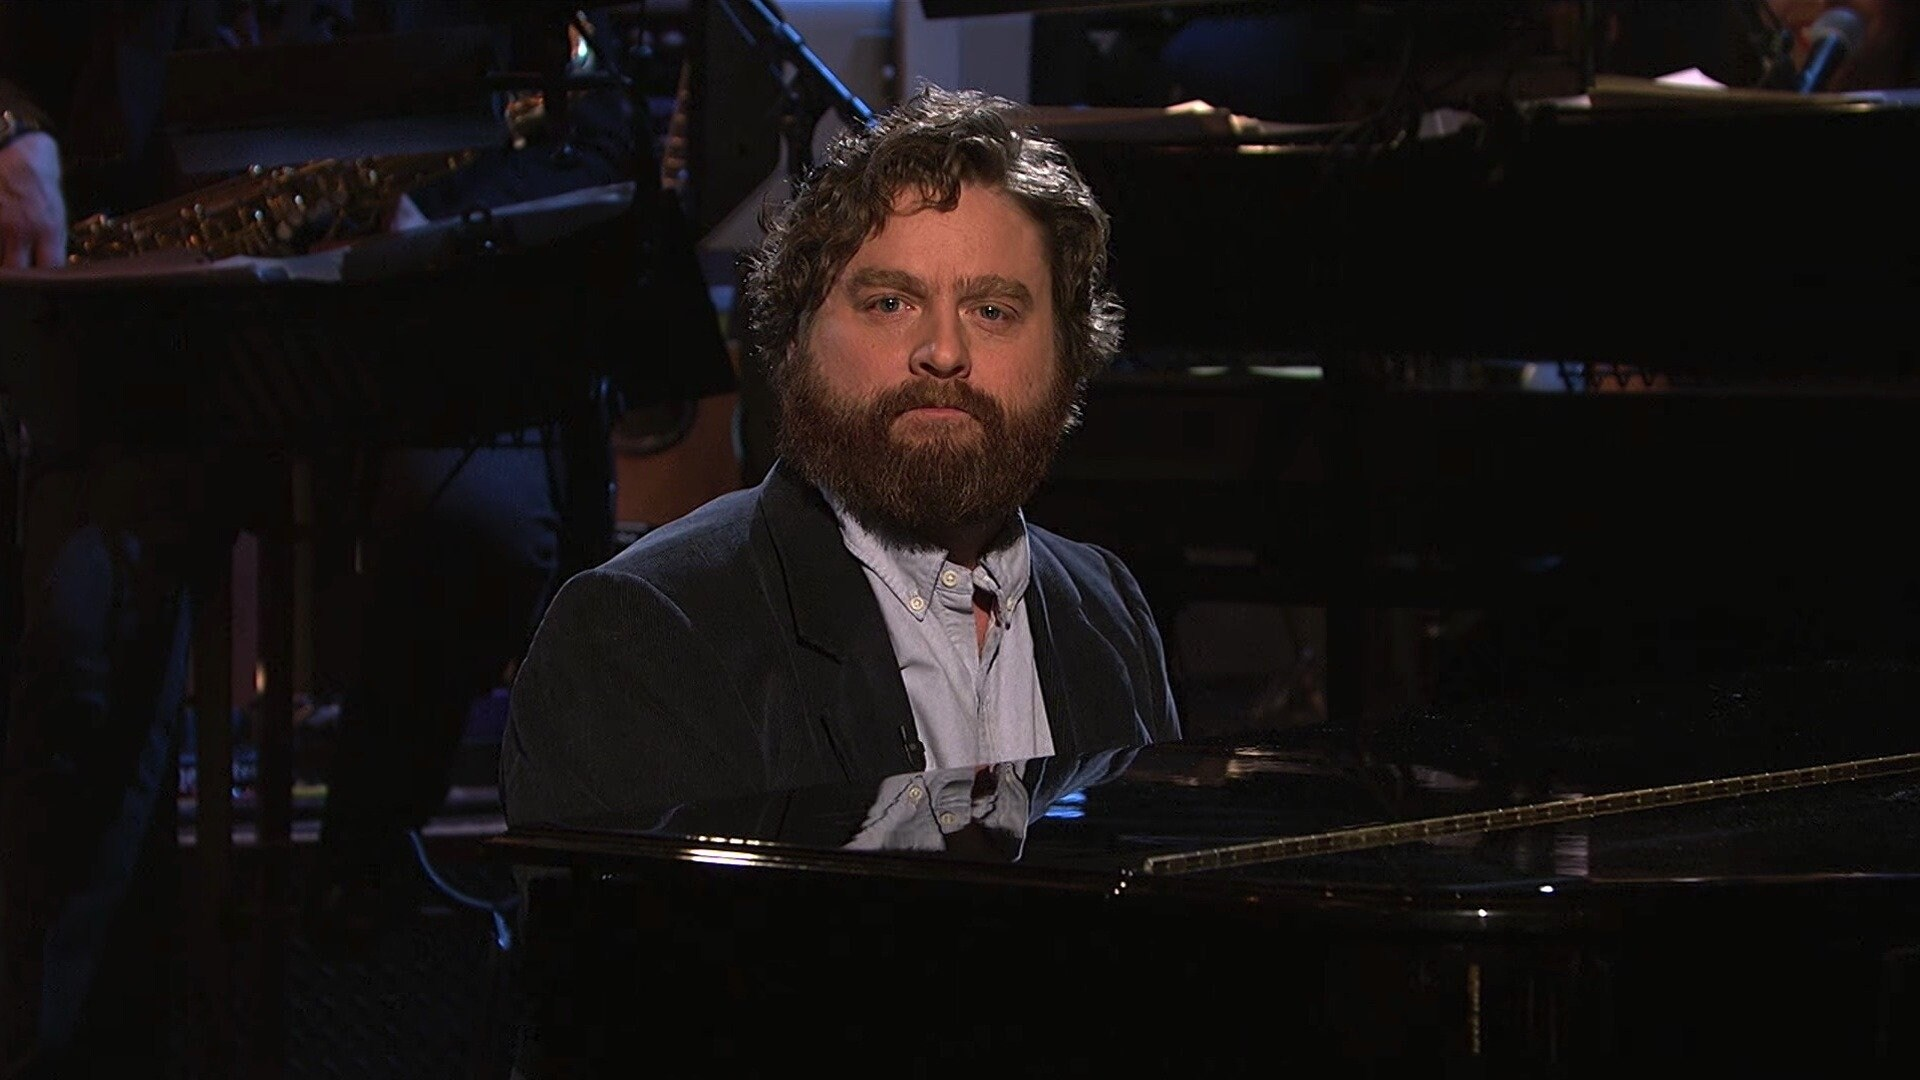 Zach Galifianakis: March 6, 2010